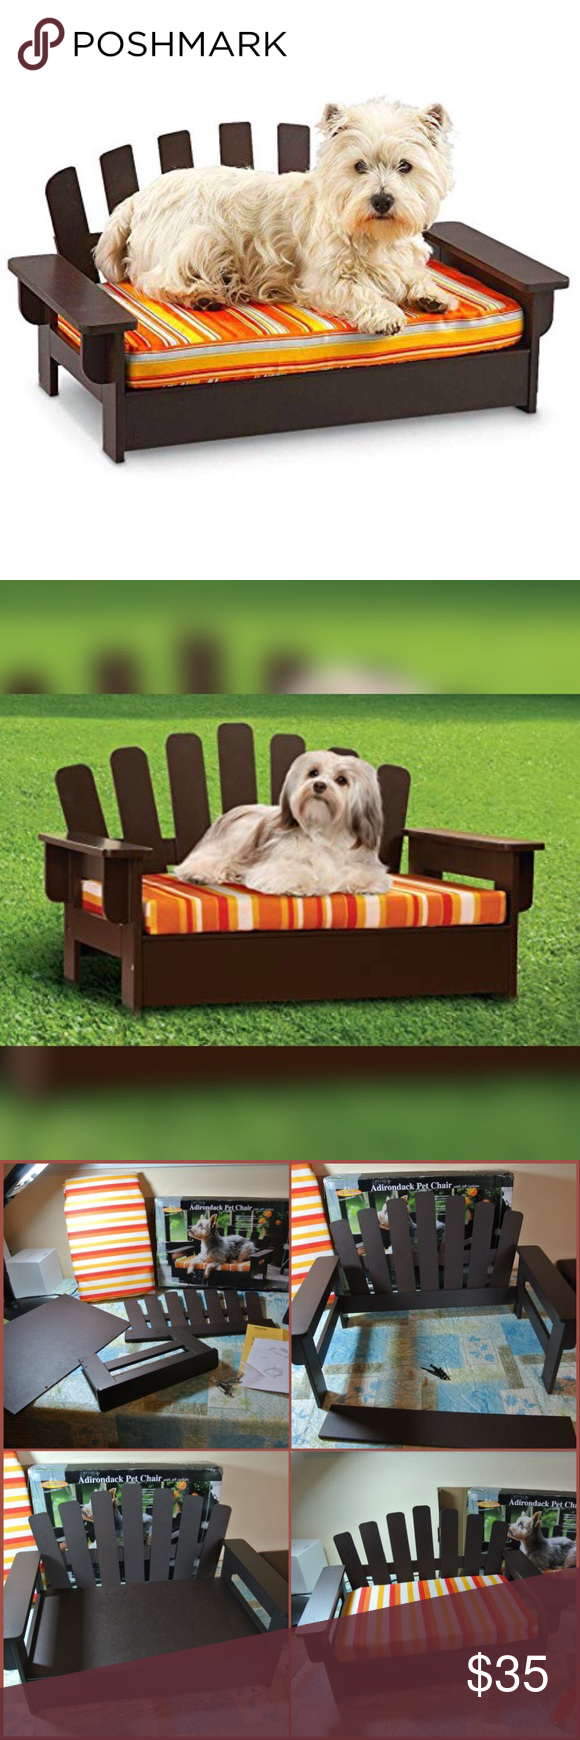 Wooden Pet Chair W Cushion For Dog Or Cat Box Was Ripped During Shipping But The Not Damaged Please See Last Photo Details